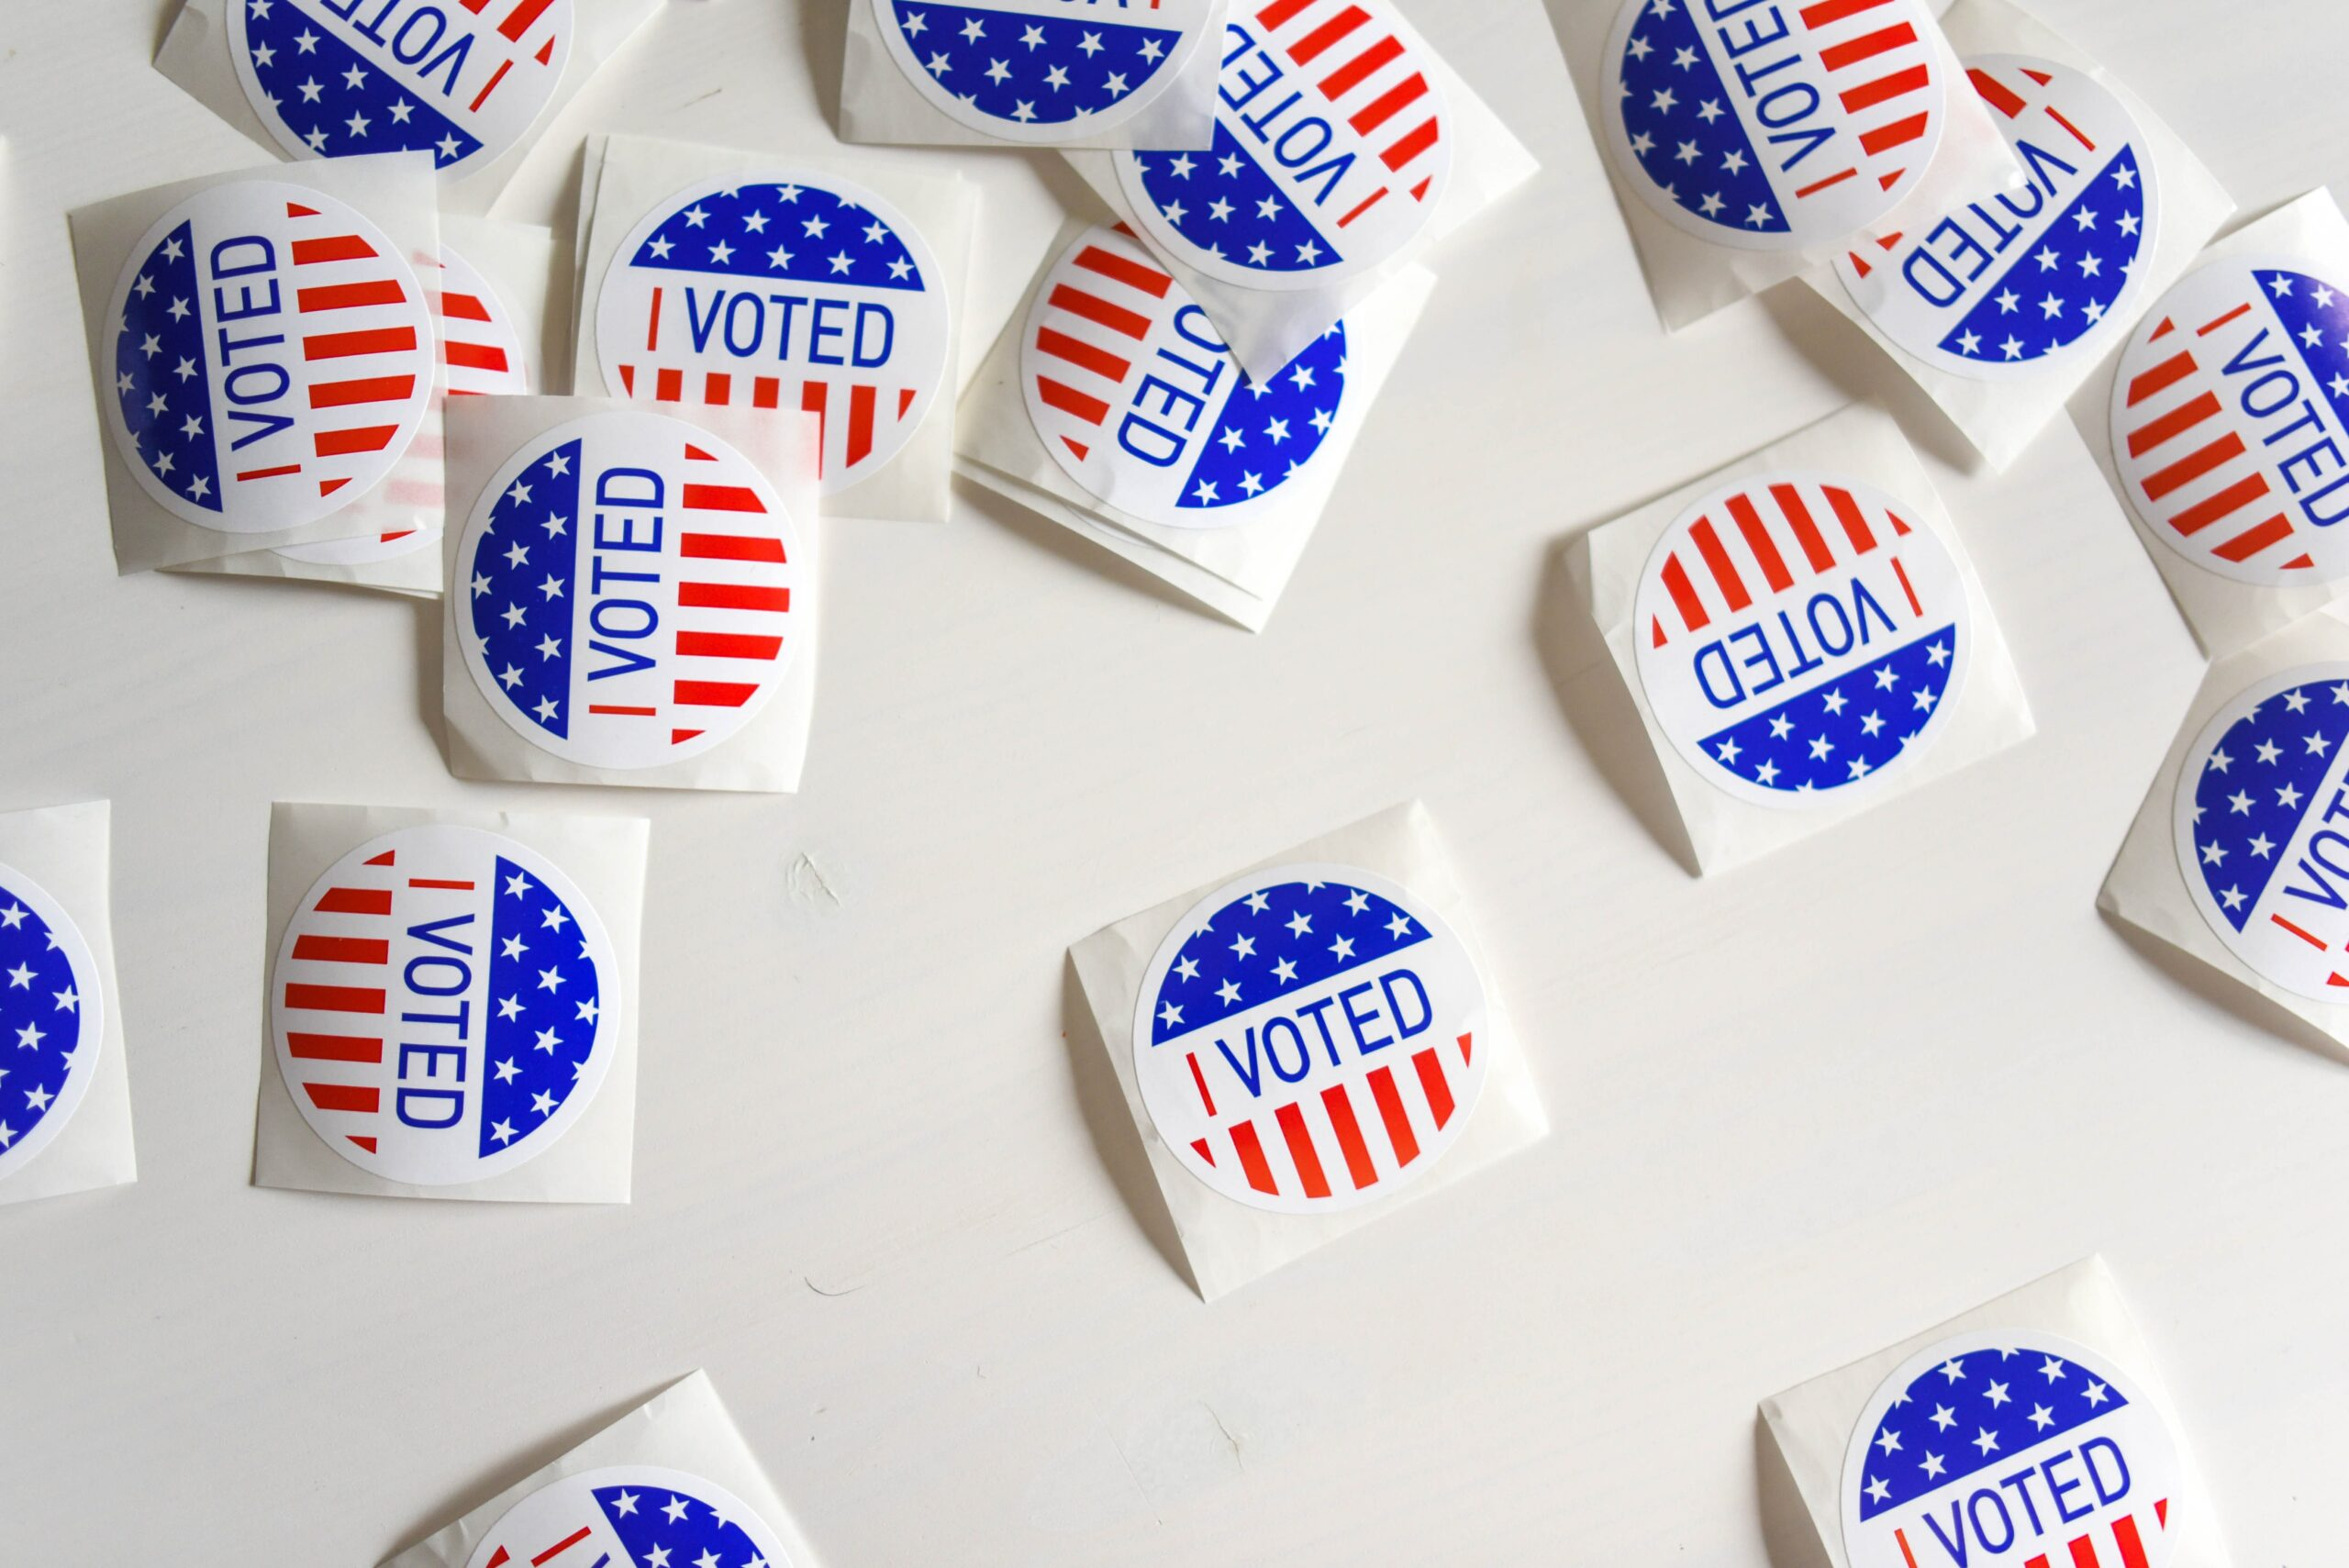 The Real Problems with Universal Mail-in Voting